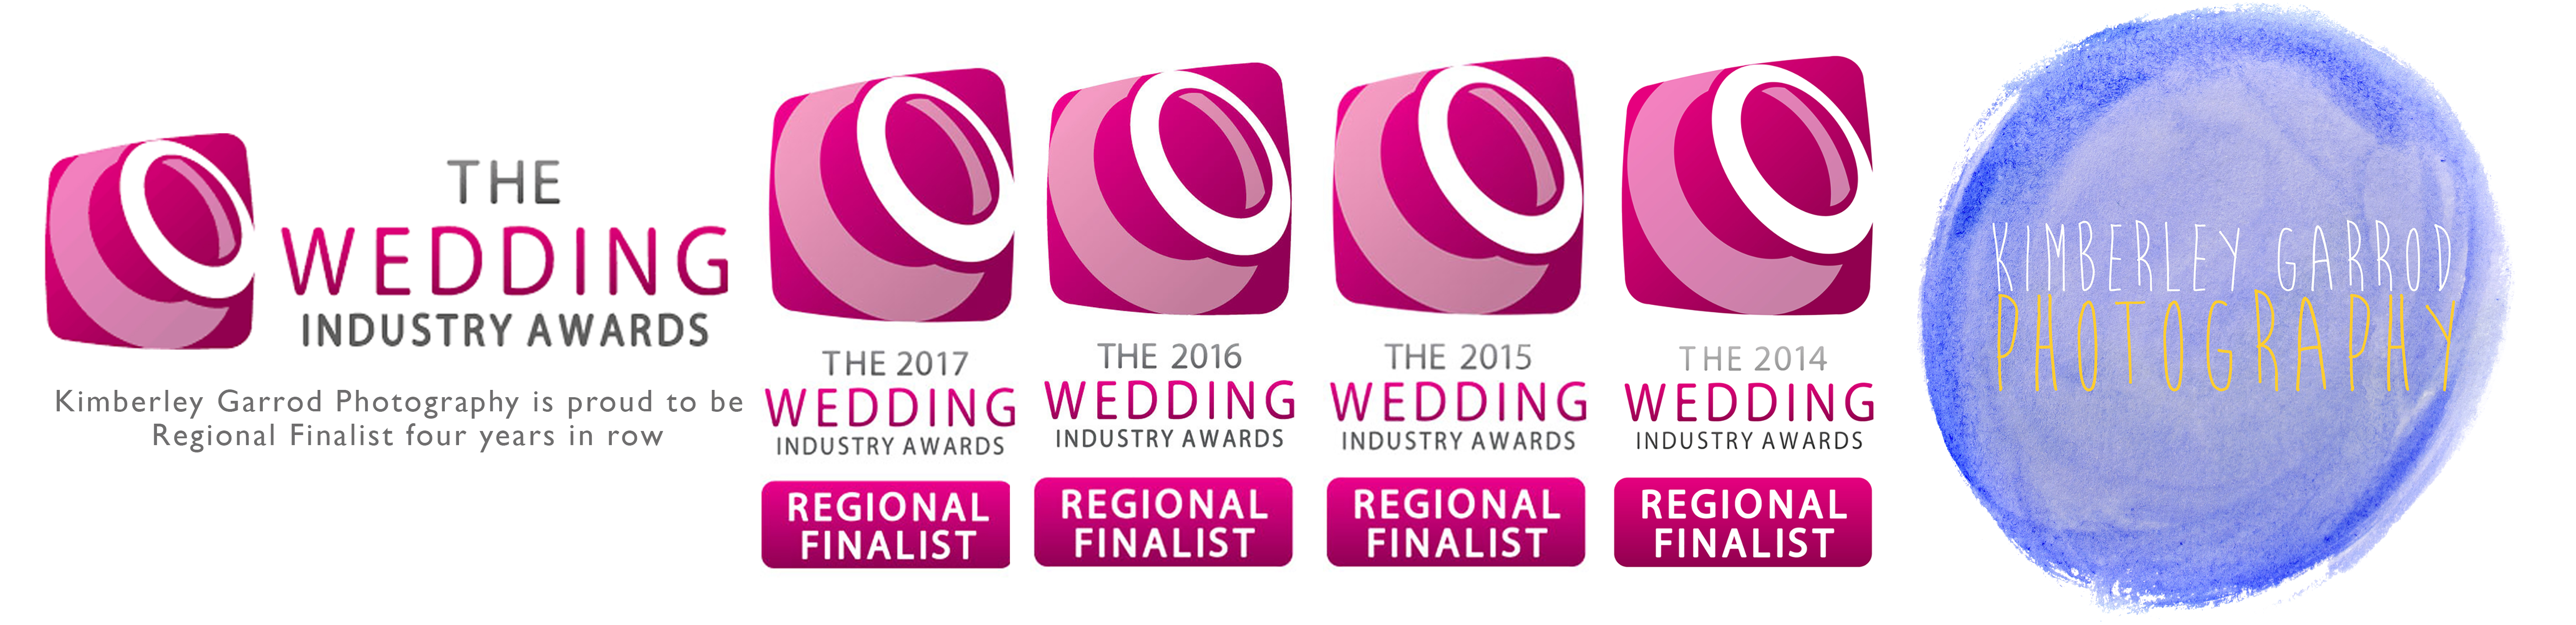 Wedding industry Awards Award winning Wedding Photographer